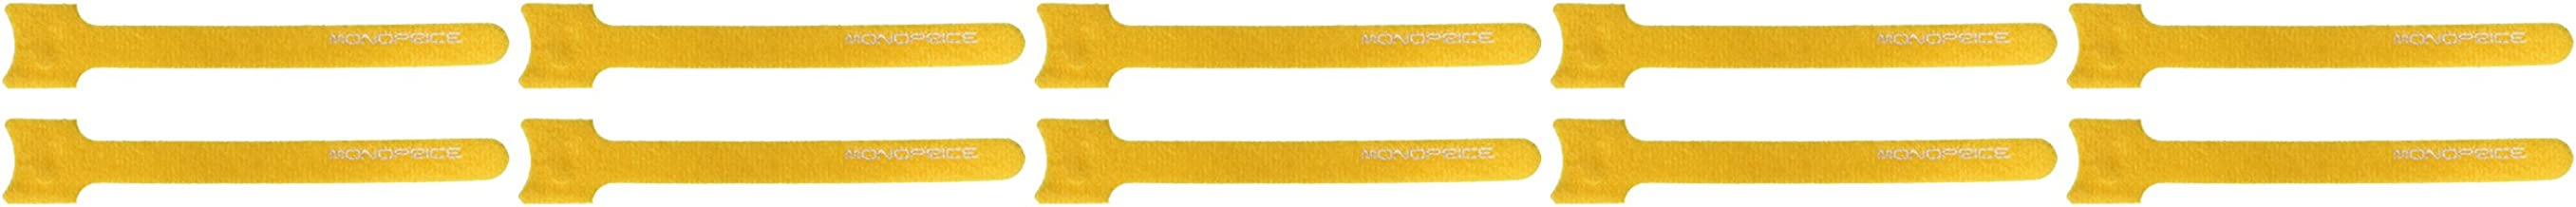 Monoprice 105813 6-Inch Hook and Loop Fastening Cable Ties, 10-Piece/Pack, Yellow